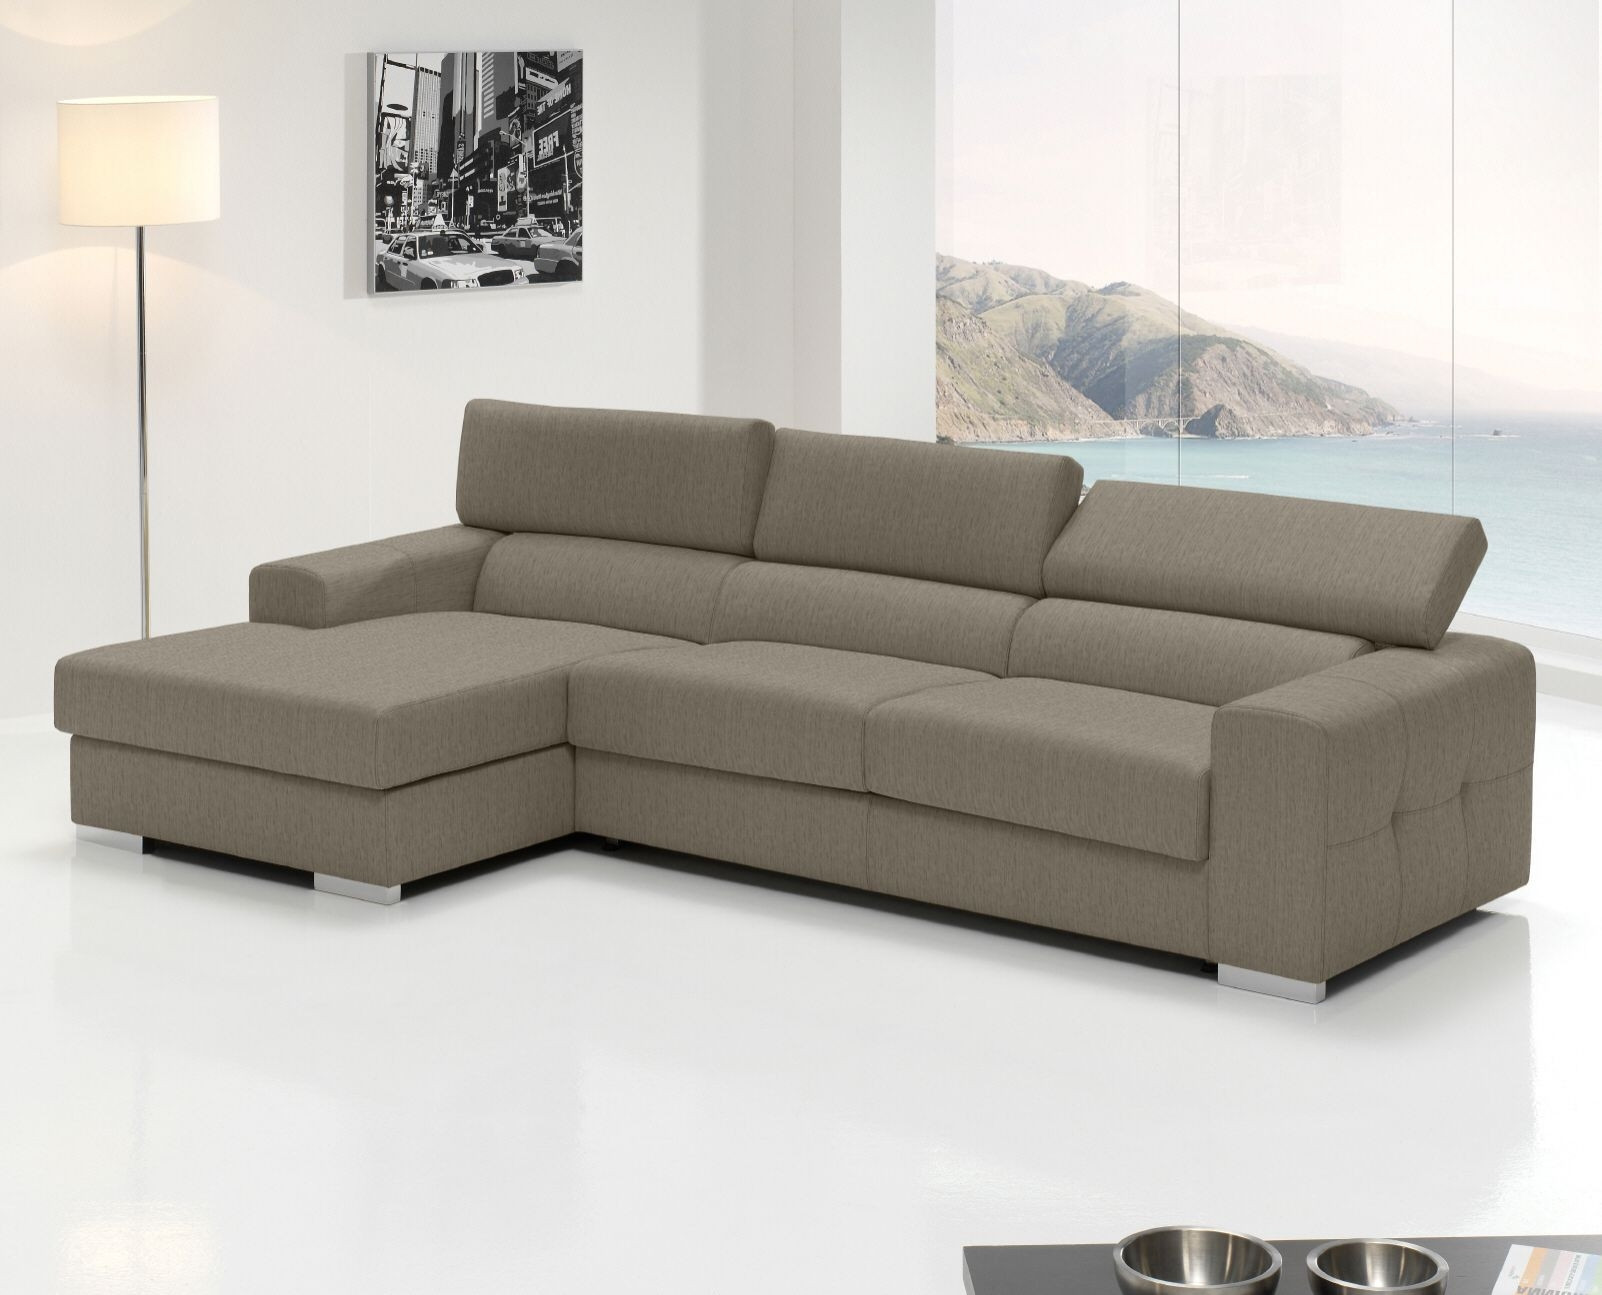 Chaise Longue Cama Baratos Magnífica sofás Cama Baratos En 3 Plazas Cama Chaise Longue Of Chaise Longue Cama Baratos Contemporáneo sofá Cama Mesmerizar sofa Chaise Longue Cama Chaise